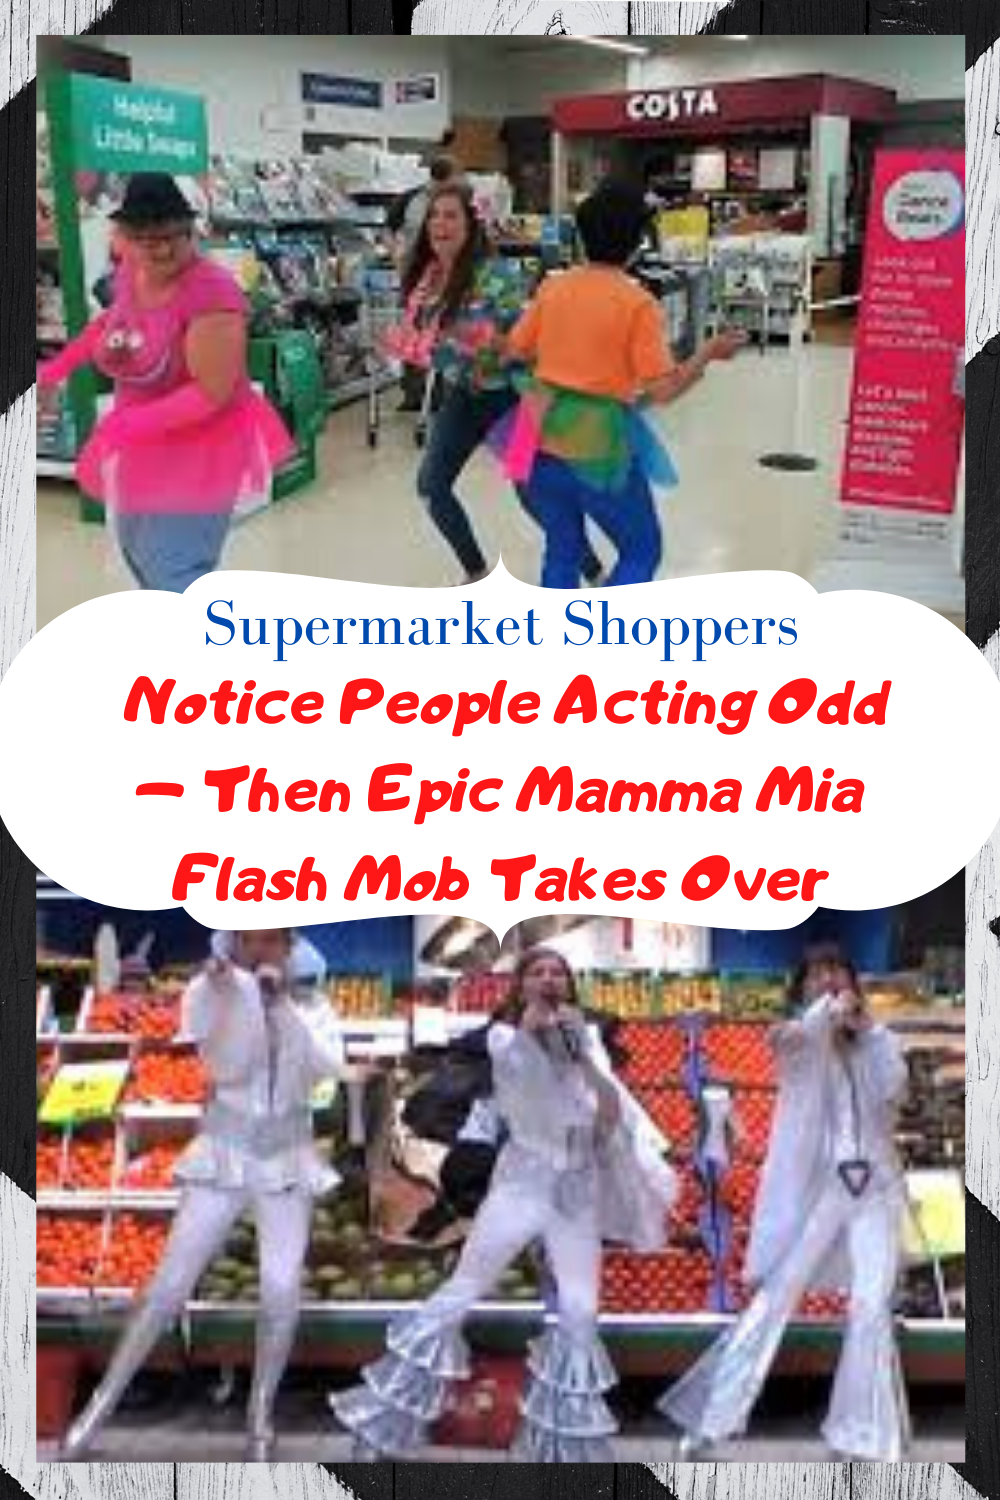 Supermarket Shoppers Notice People Acting Odd Then Epic Mamma Mia Flash Mob Takes Over In 2020 Flash Mob Fun Facts Supermarket